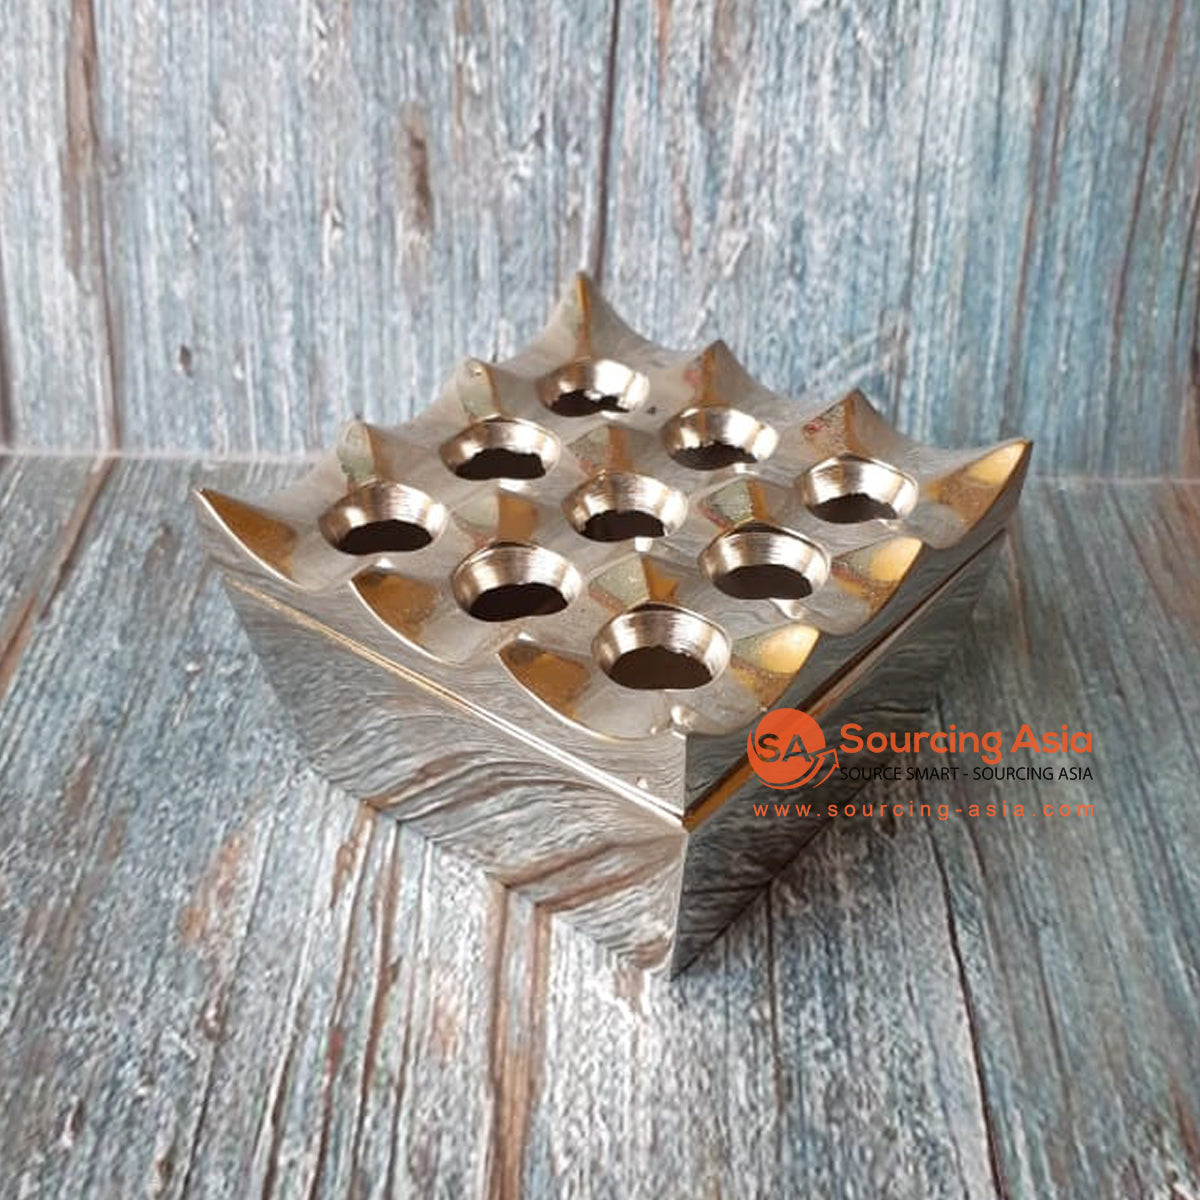 GB179-2 BRONZE ASHTRAY